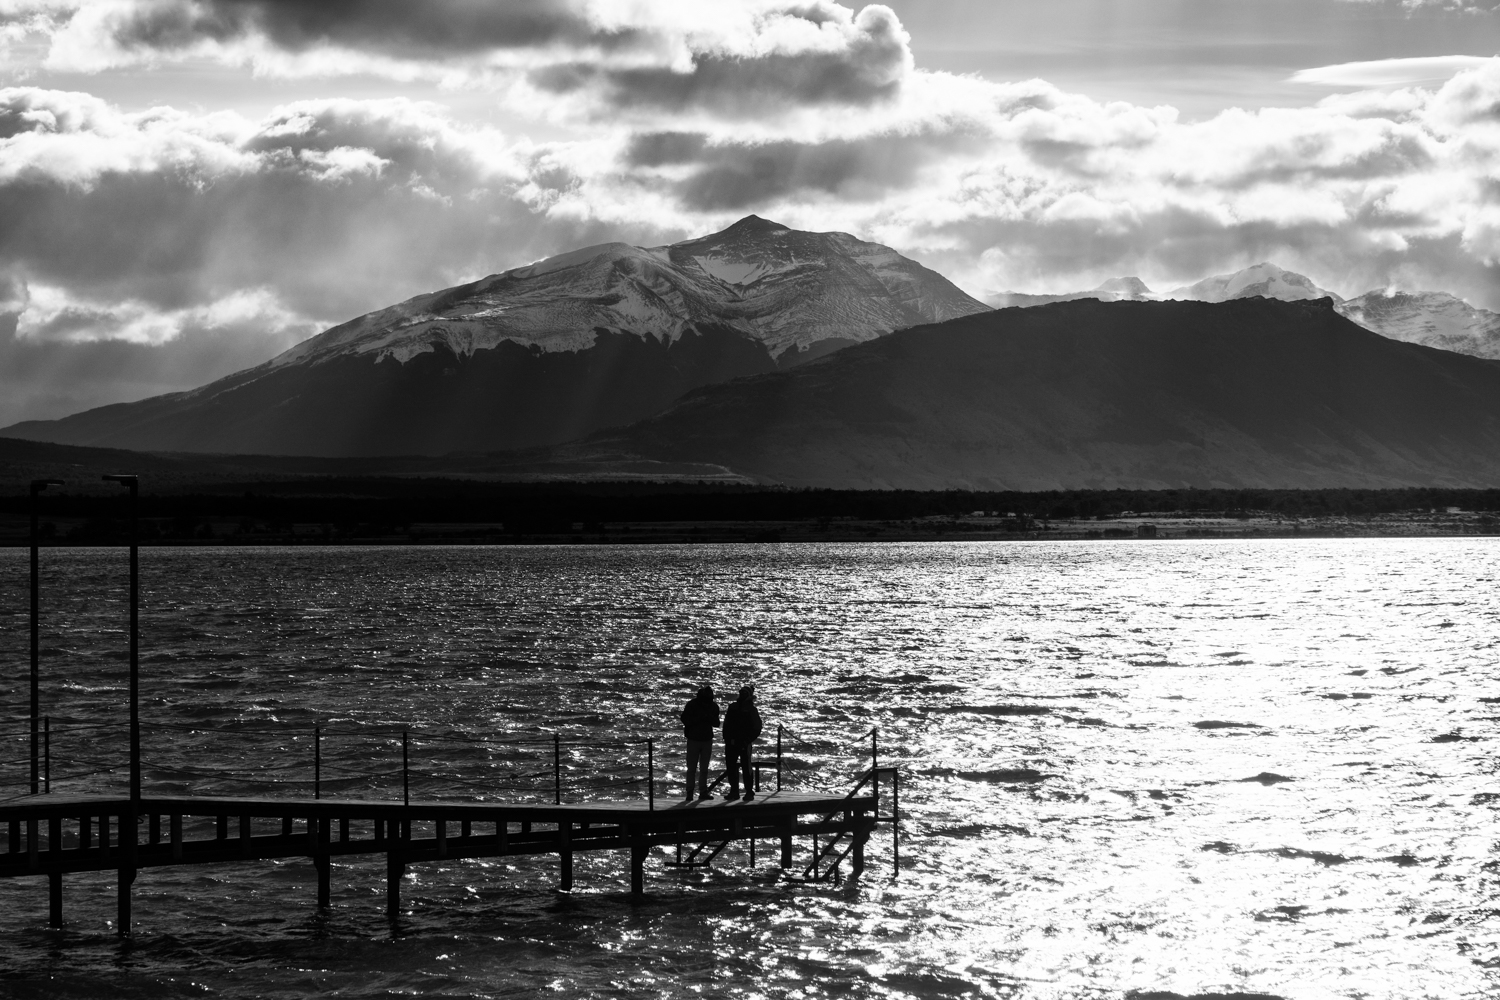 Watching the Mountain, Puerto Natales, Chile